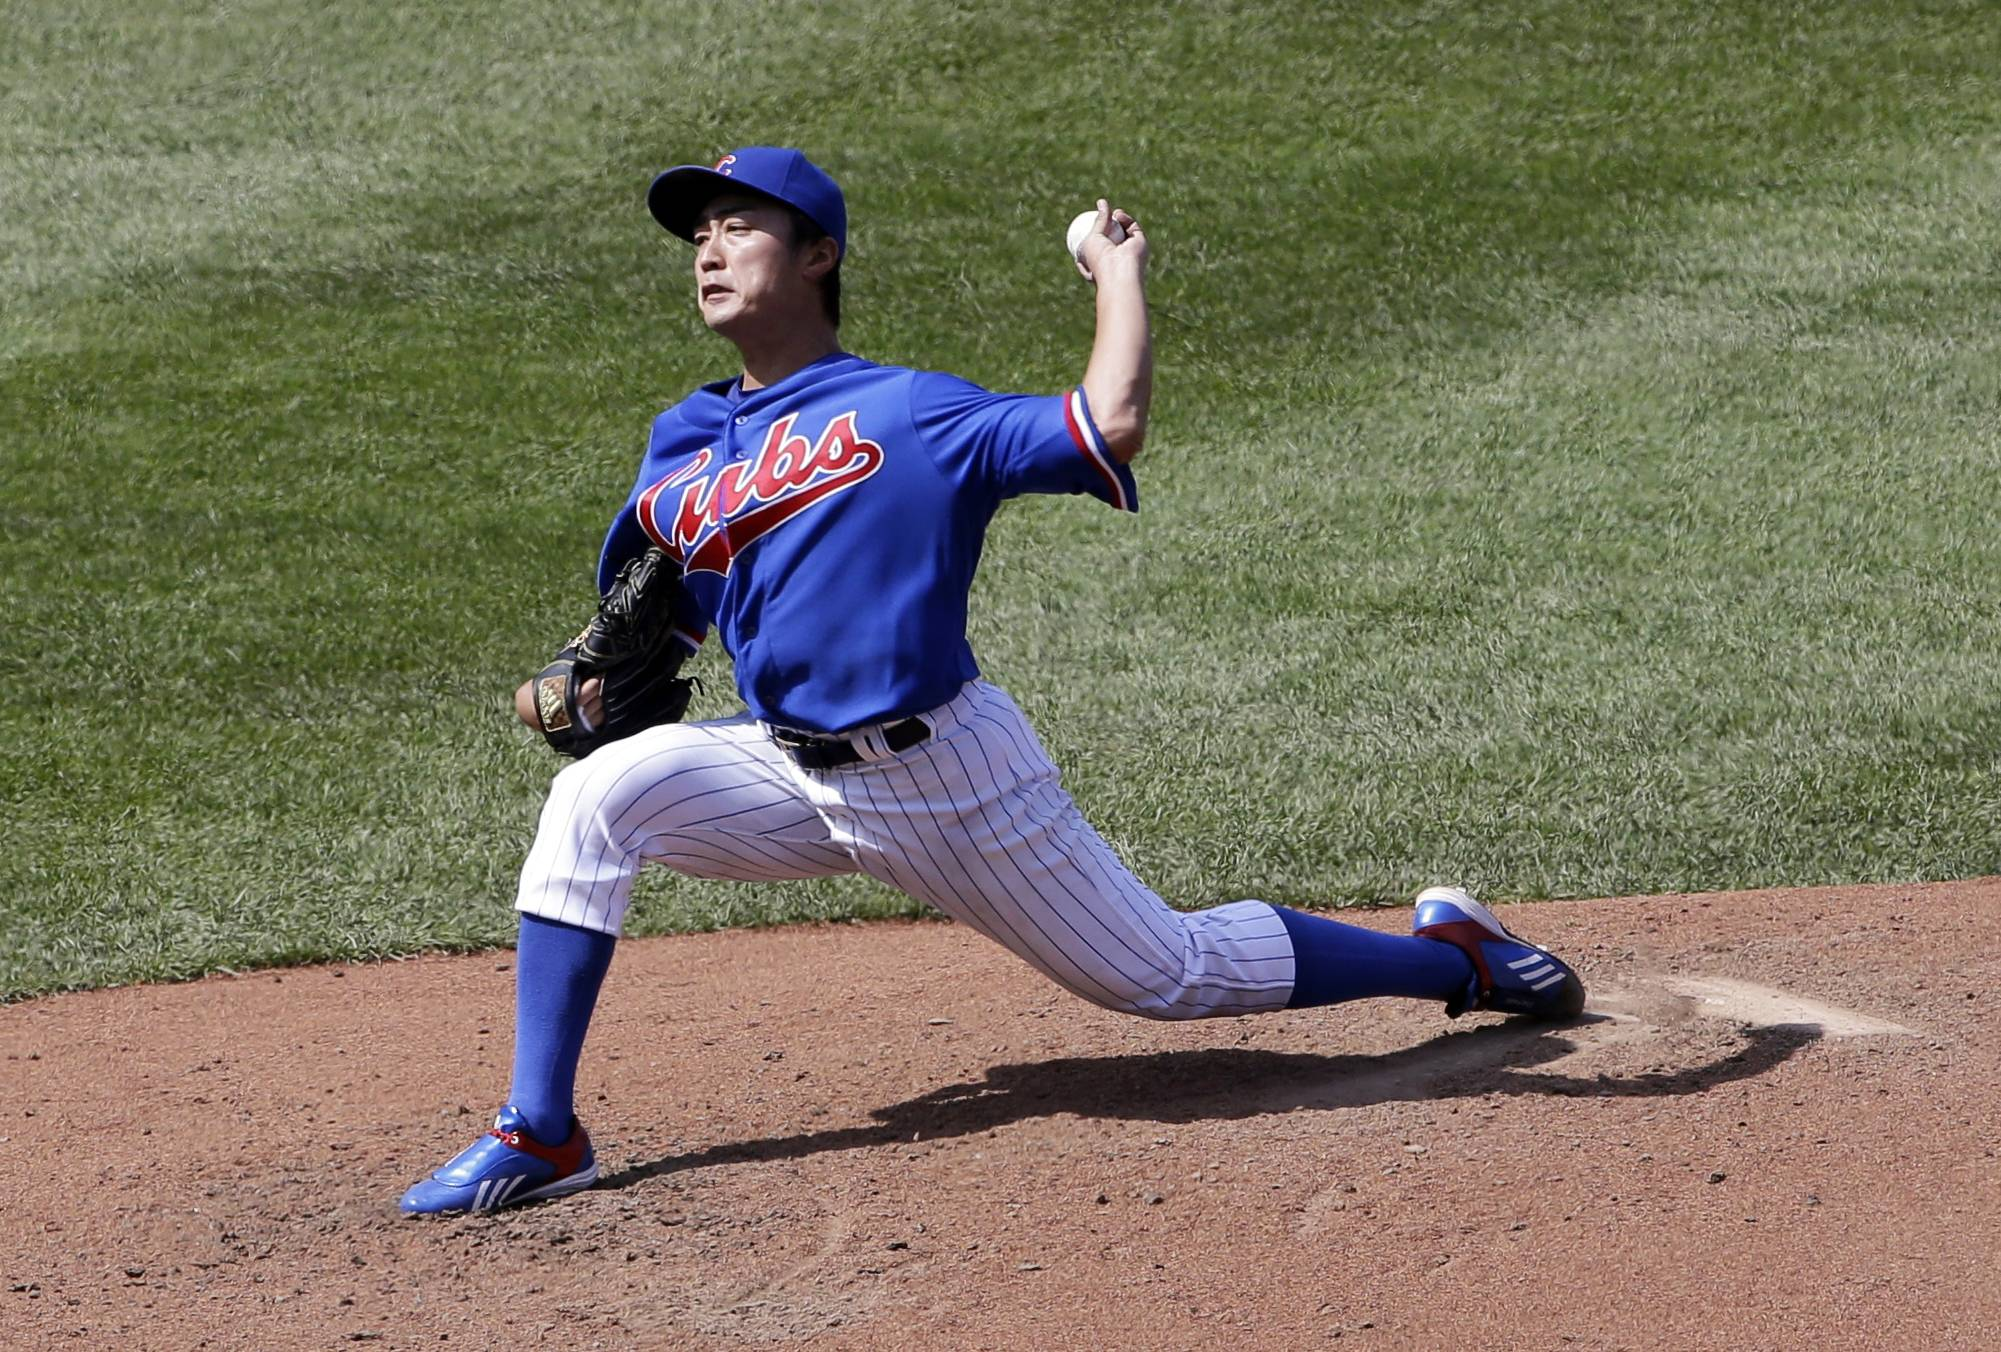 Cubs starter Tsuyoshi Wada took a no-hitter into the seventh inning in Sunday's victory over the Orioles at Wrigley Field.